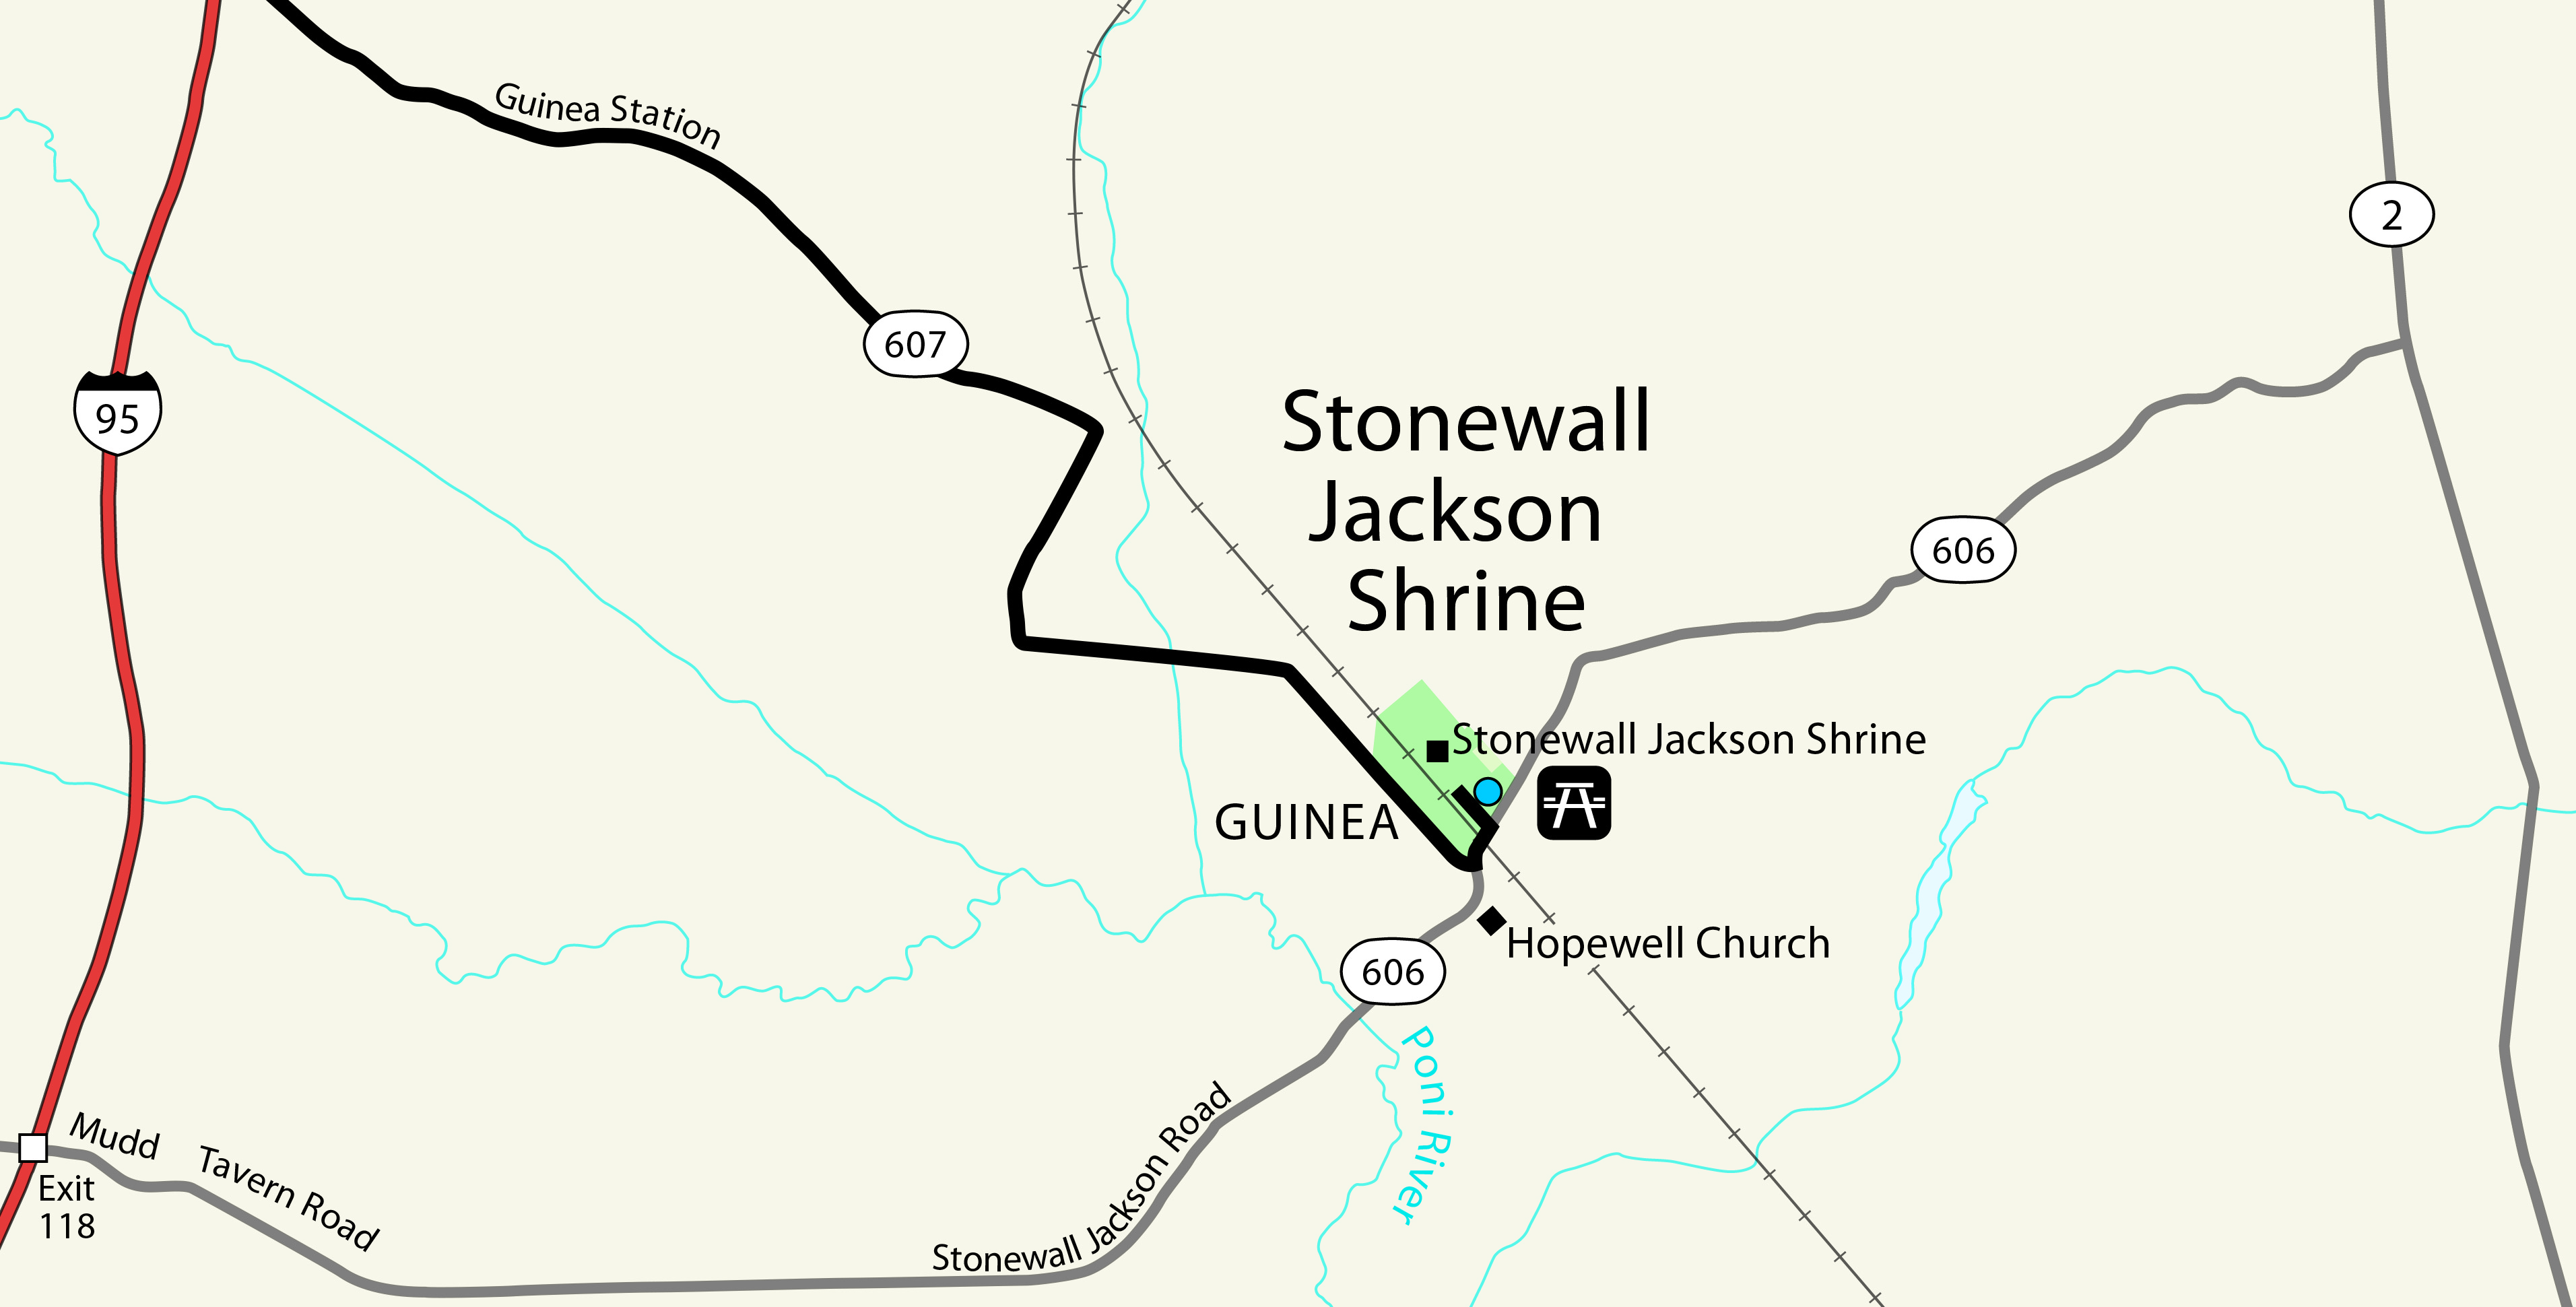 """Where the """"Stonewall"""" Jackson Shrine is located on the map"""